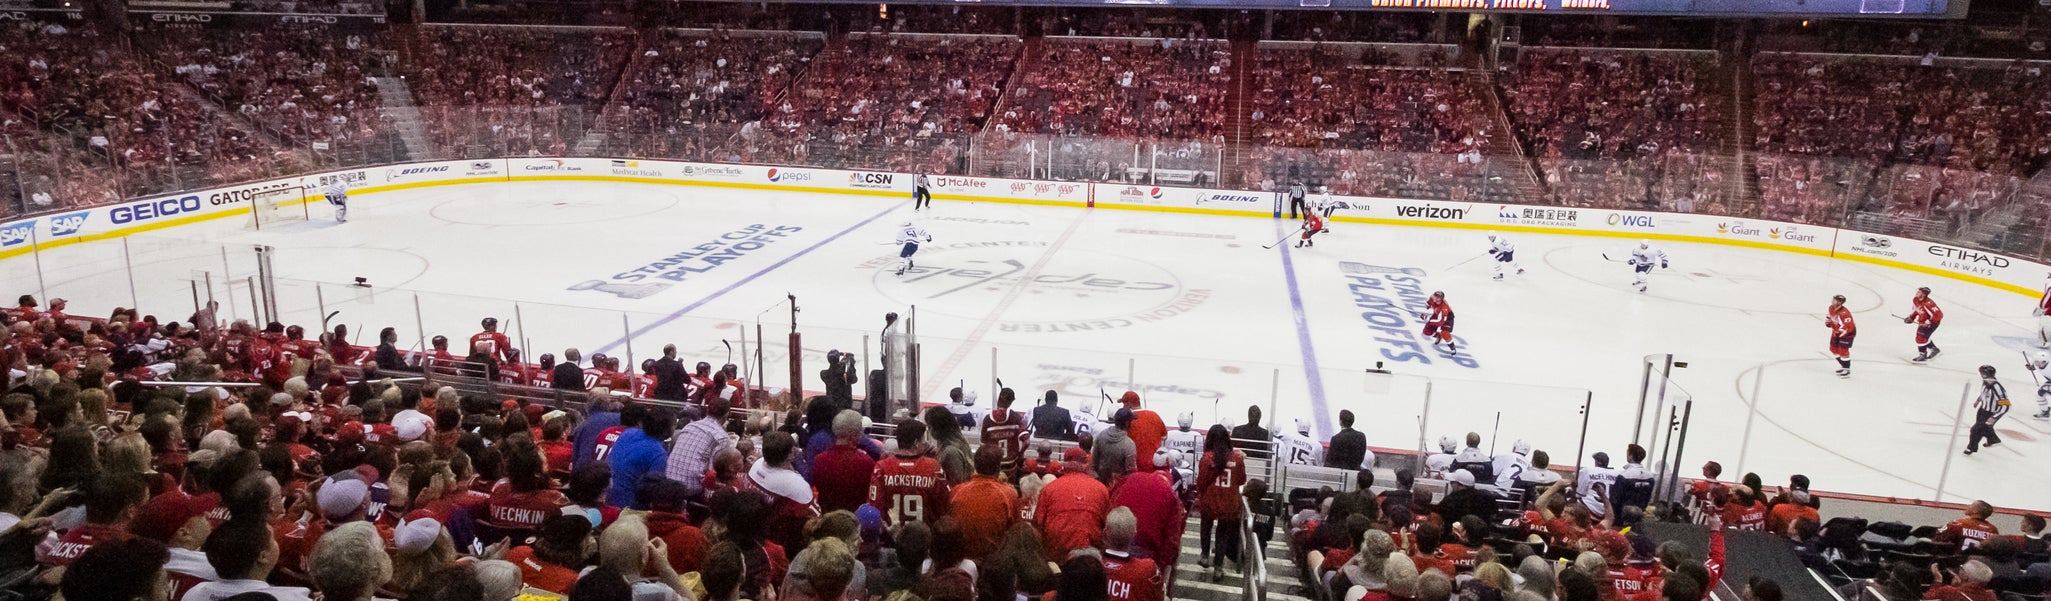 Seat view from LL Center Preferred 100 at Capital One Arena